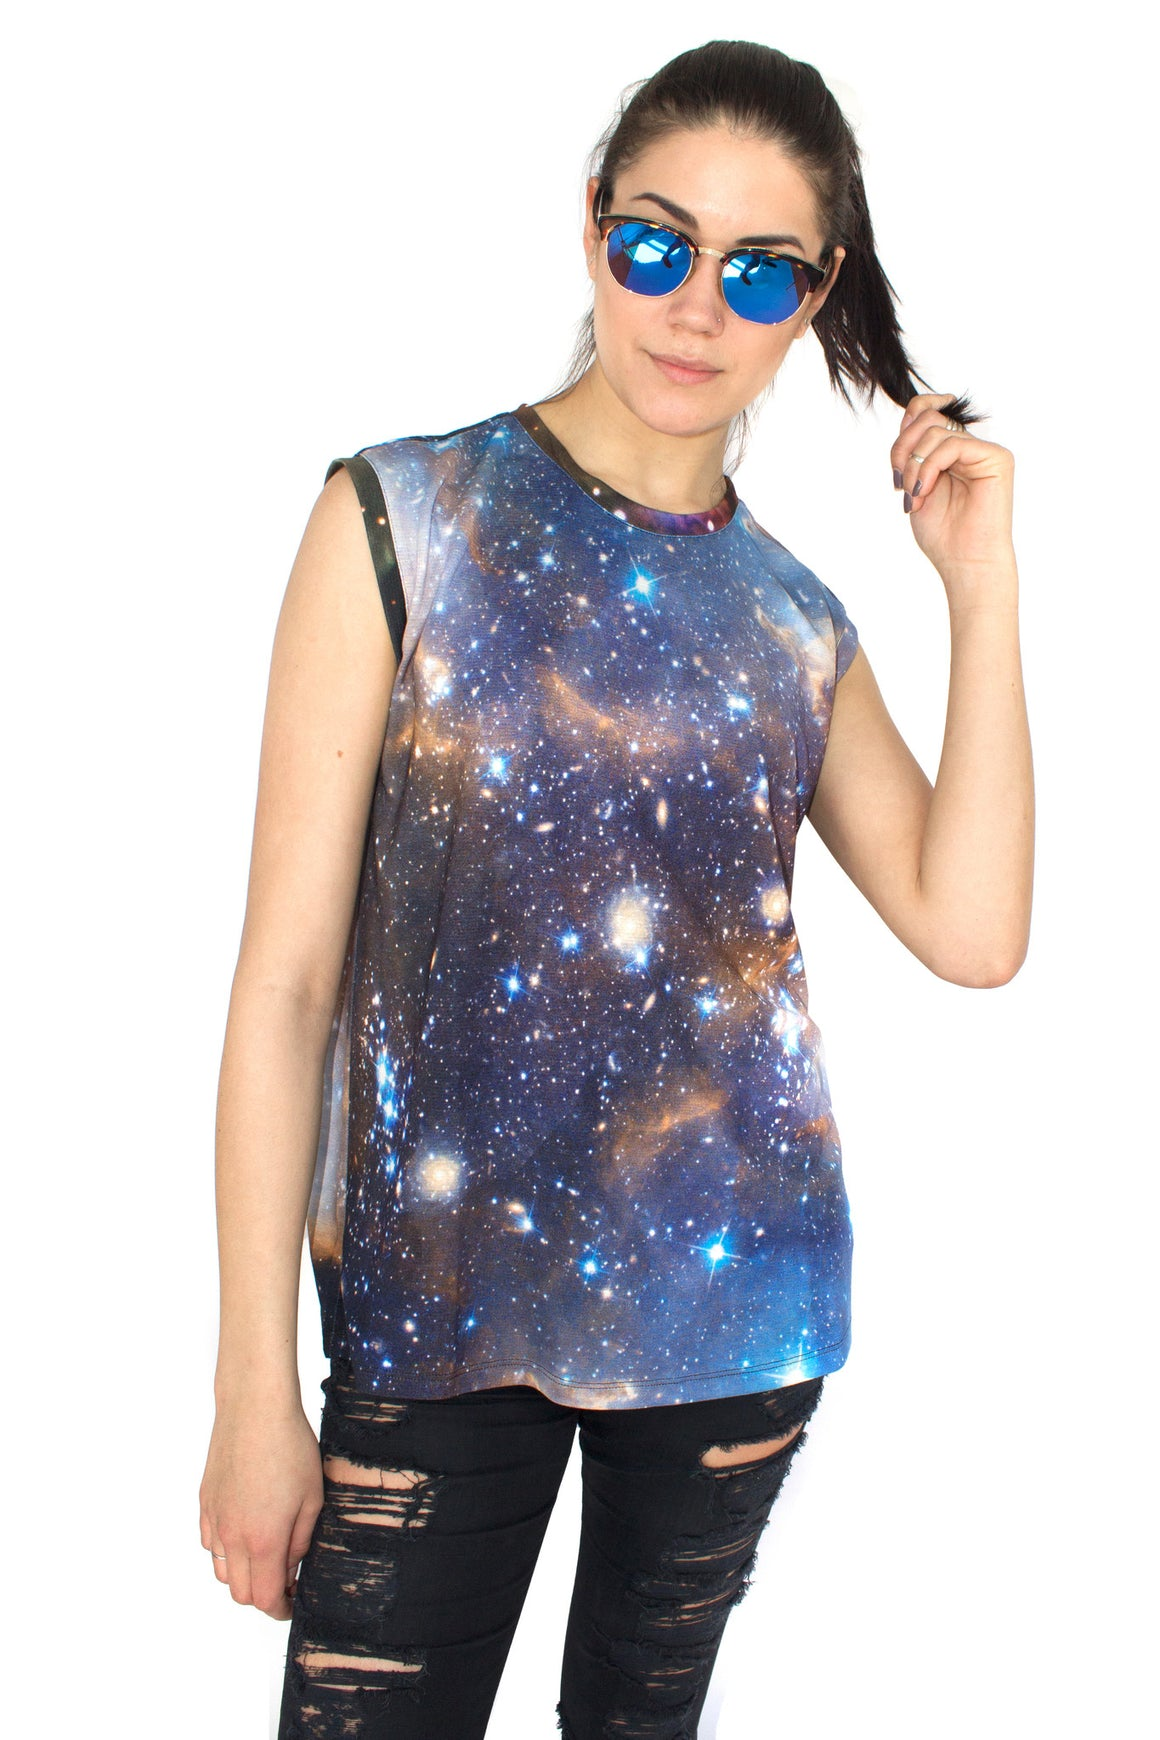 Sagan Galaxy Tank, Shadowplaynyc, Galaxy Print Clothing